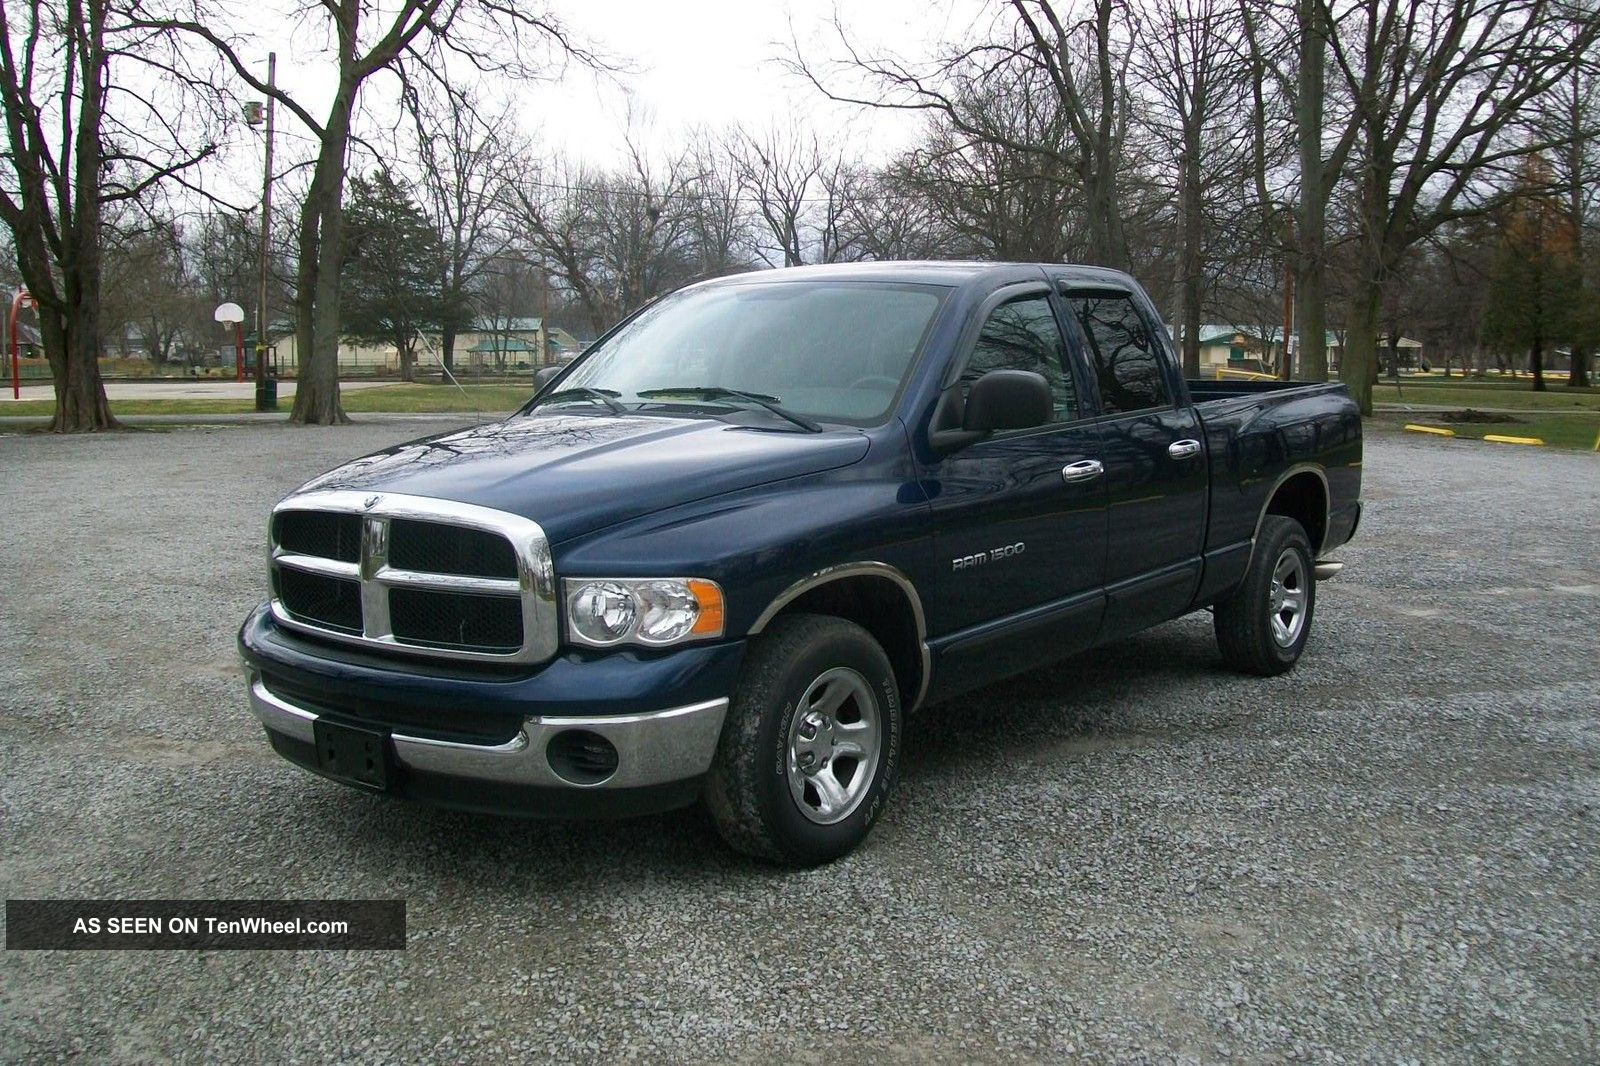 2005 dodge ram 1500 quad cab short bed 2wd. Black Bedroom Furniture Sets. Home Design Ideas